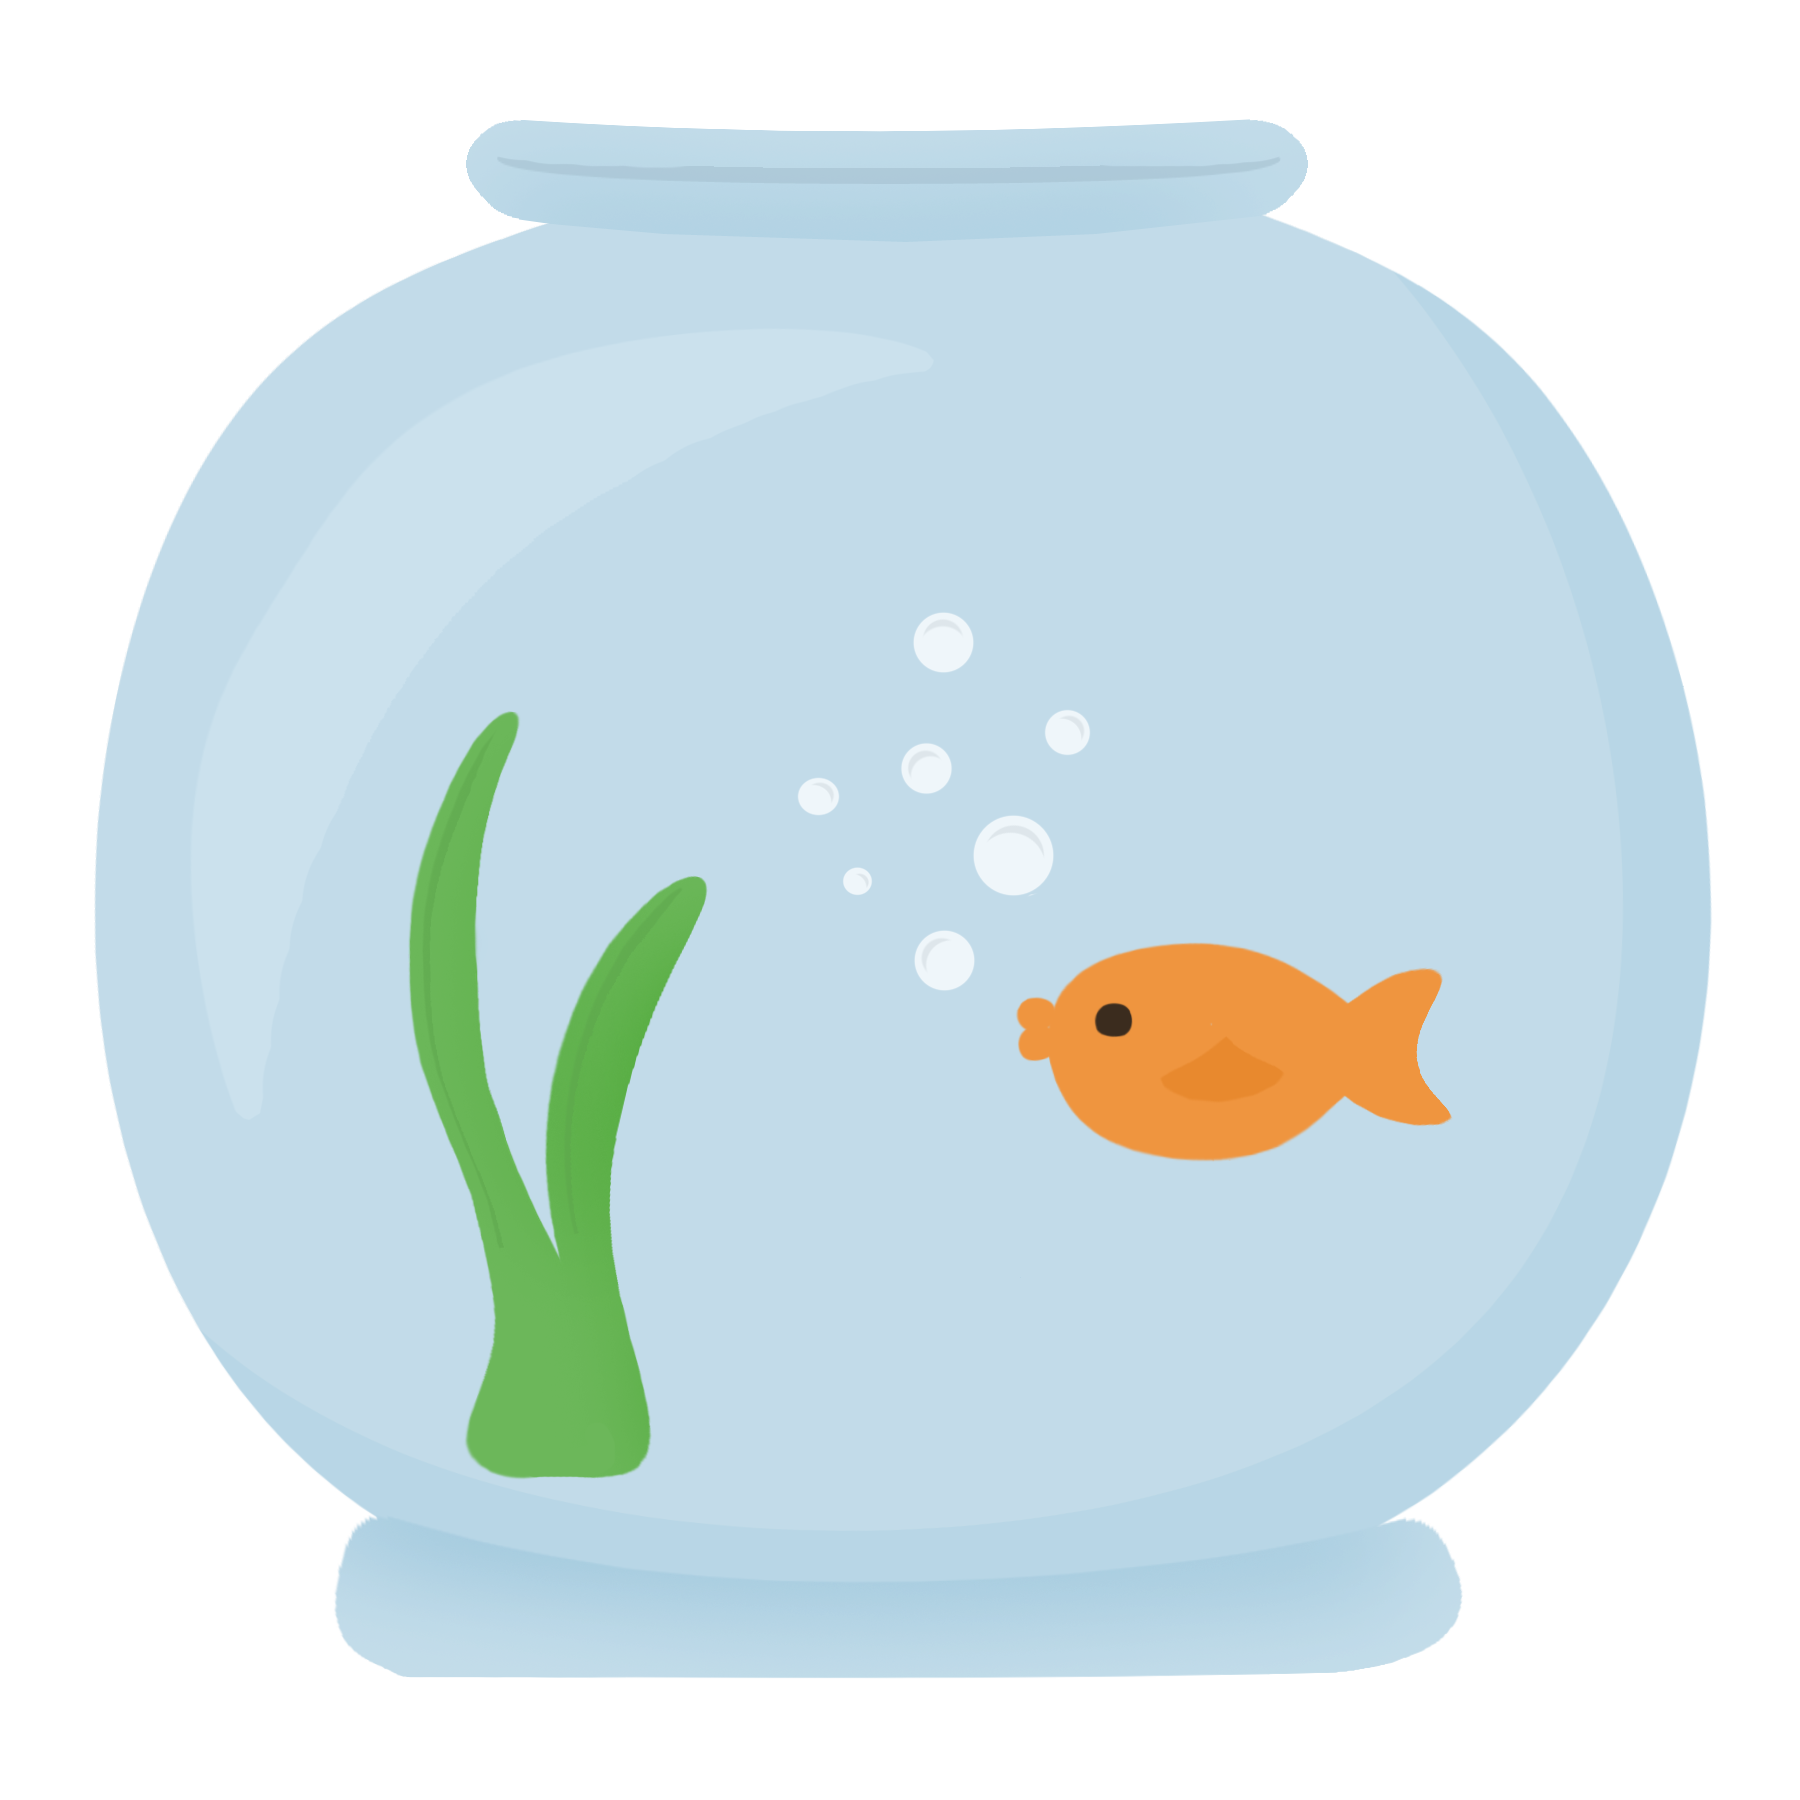 Free fish bowl clipart clipart stock Organism Fish - fish bowl 1800*1800 transprent Png Free Download ... clipart stock